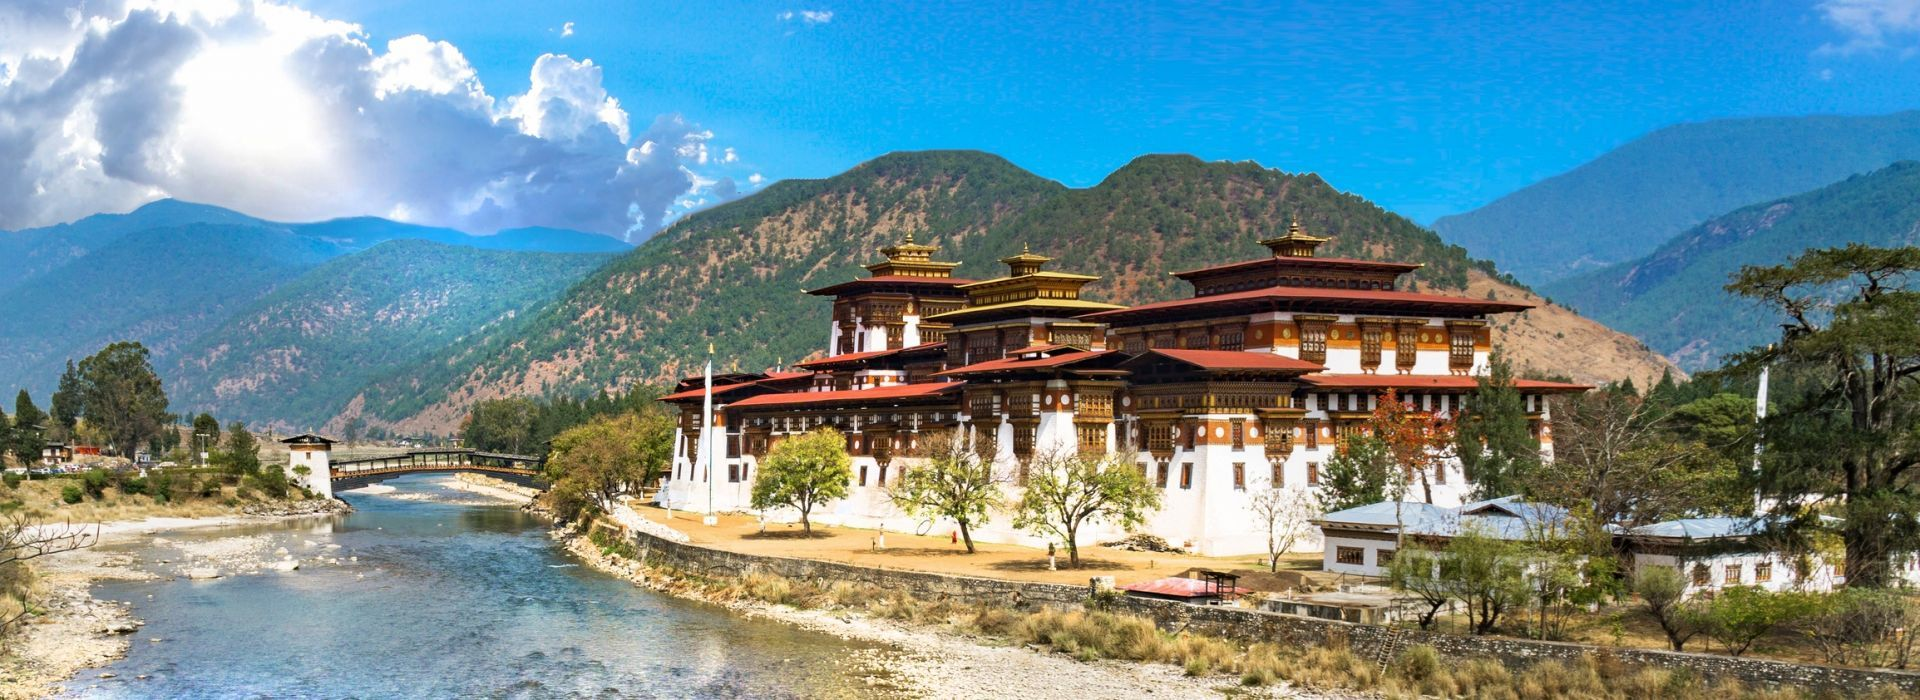 Sightseeing, attractions, culture and history Tours in Thimphu